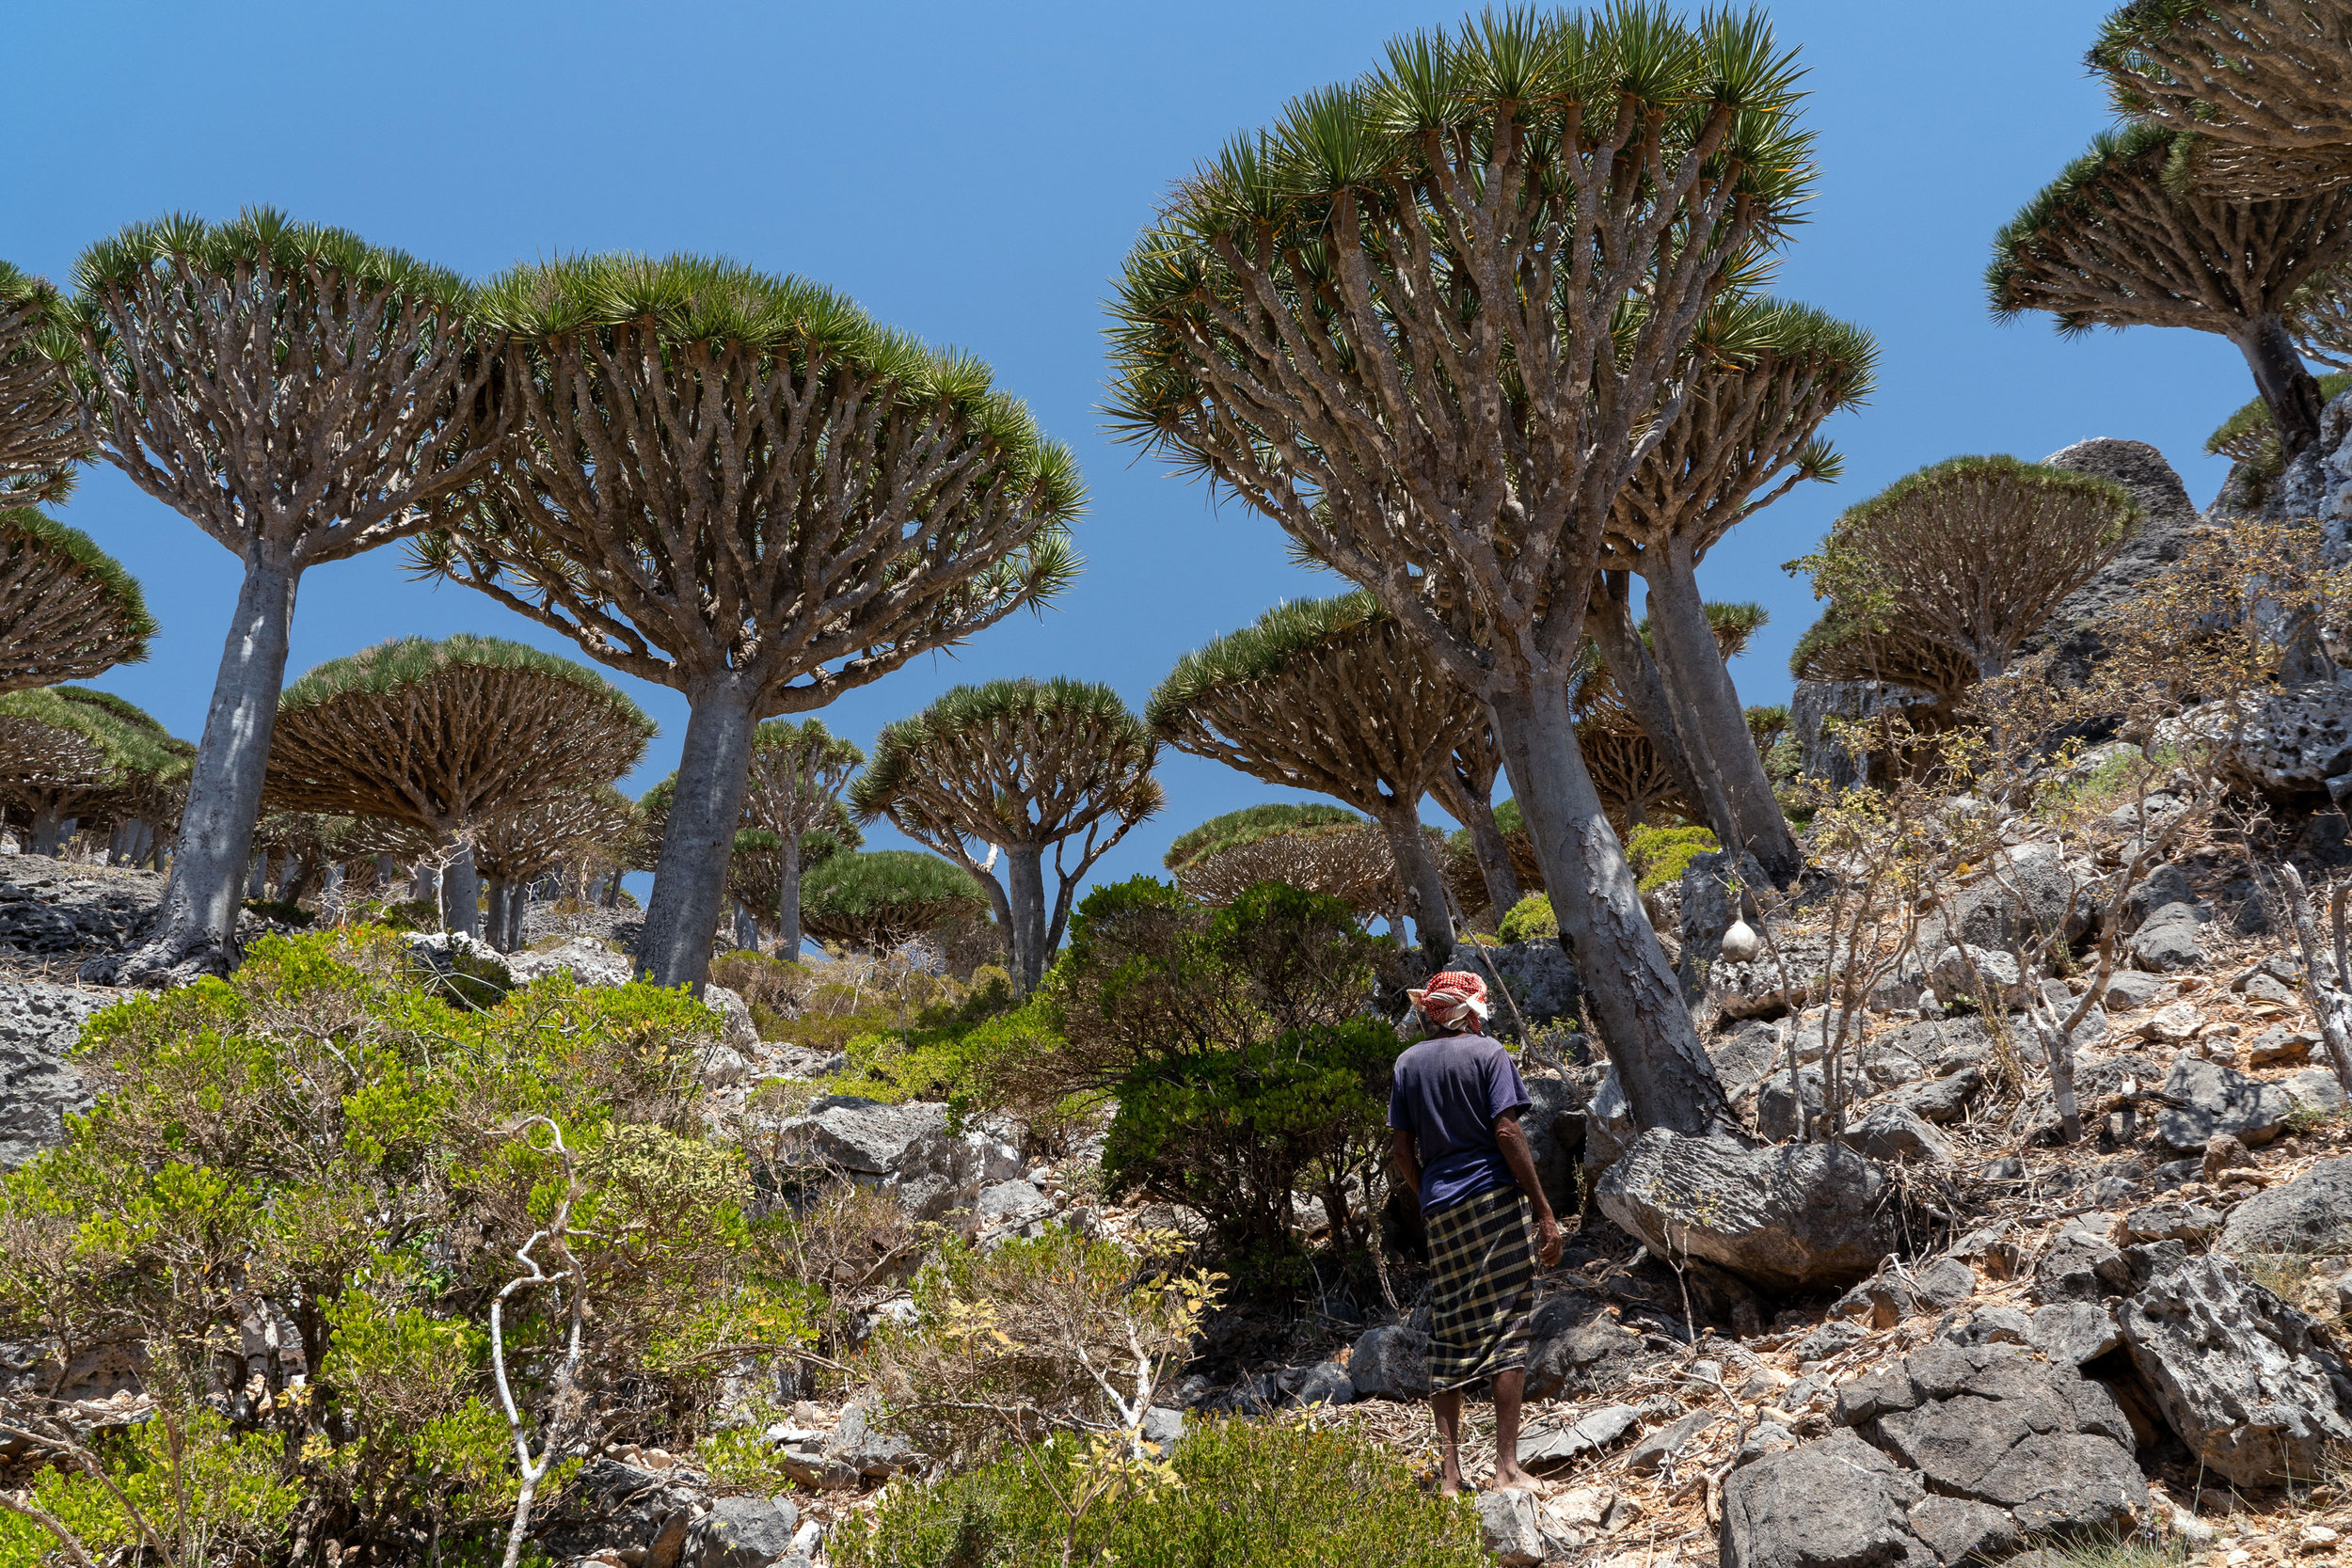 Dragon's Blood Trees grow from the rocky mountain face in central Socotra's Haggier Range. For the first 30 some years of their existence, these trees resemble a small bush, before they begin to grow a trunk. Then, after an unknown amount of time they slowly develop branches. These trees are hundreds of years old and under threat. Since the introduction of goats to Socotra, baby Dragons are gobbled up and now only can be found in nurseries in significant numbers.